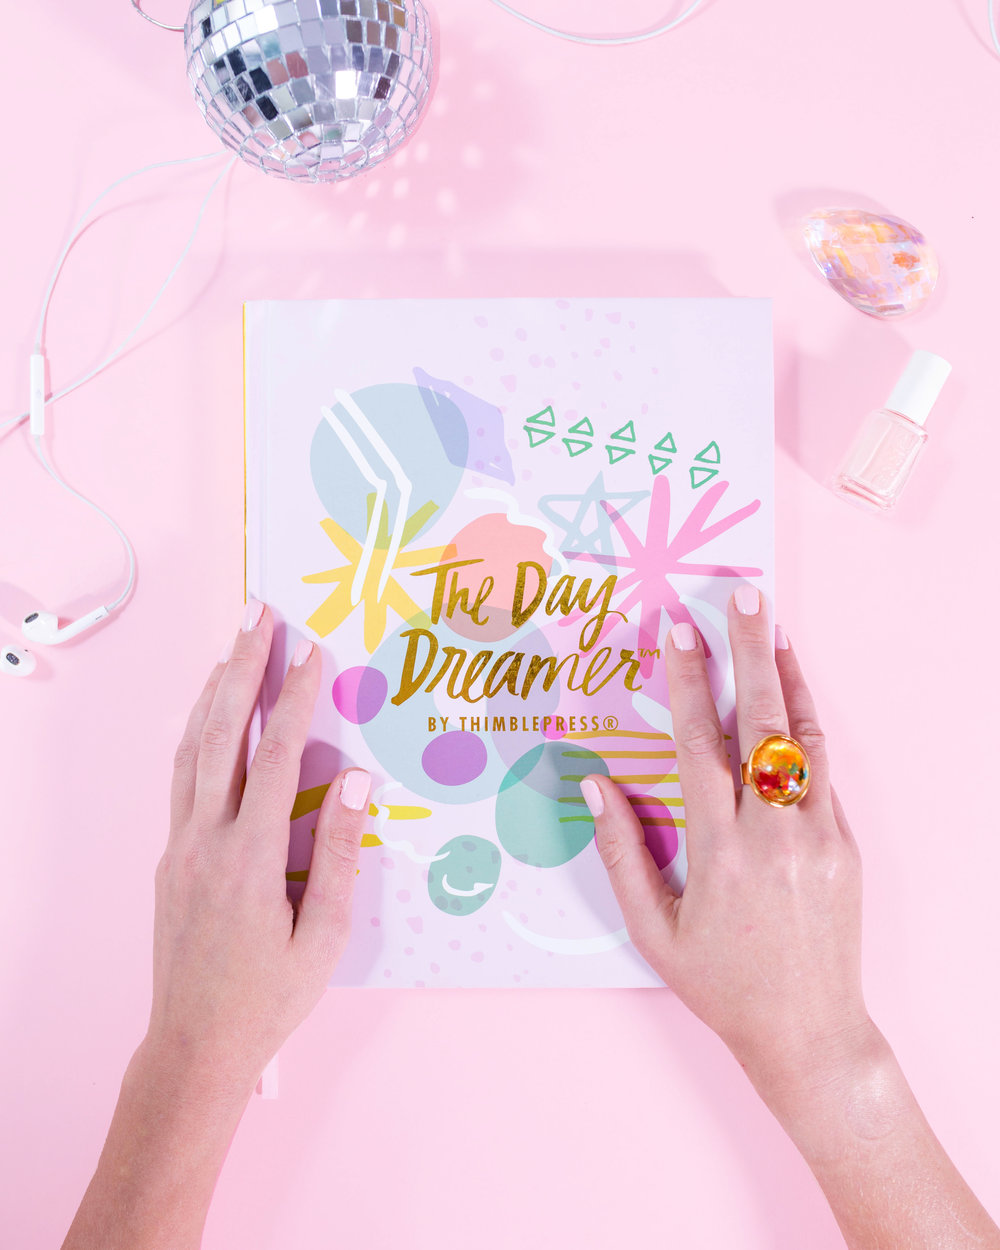 spreading kindness | cake & confetti | thimblepress